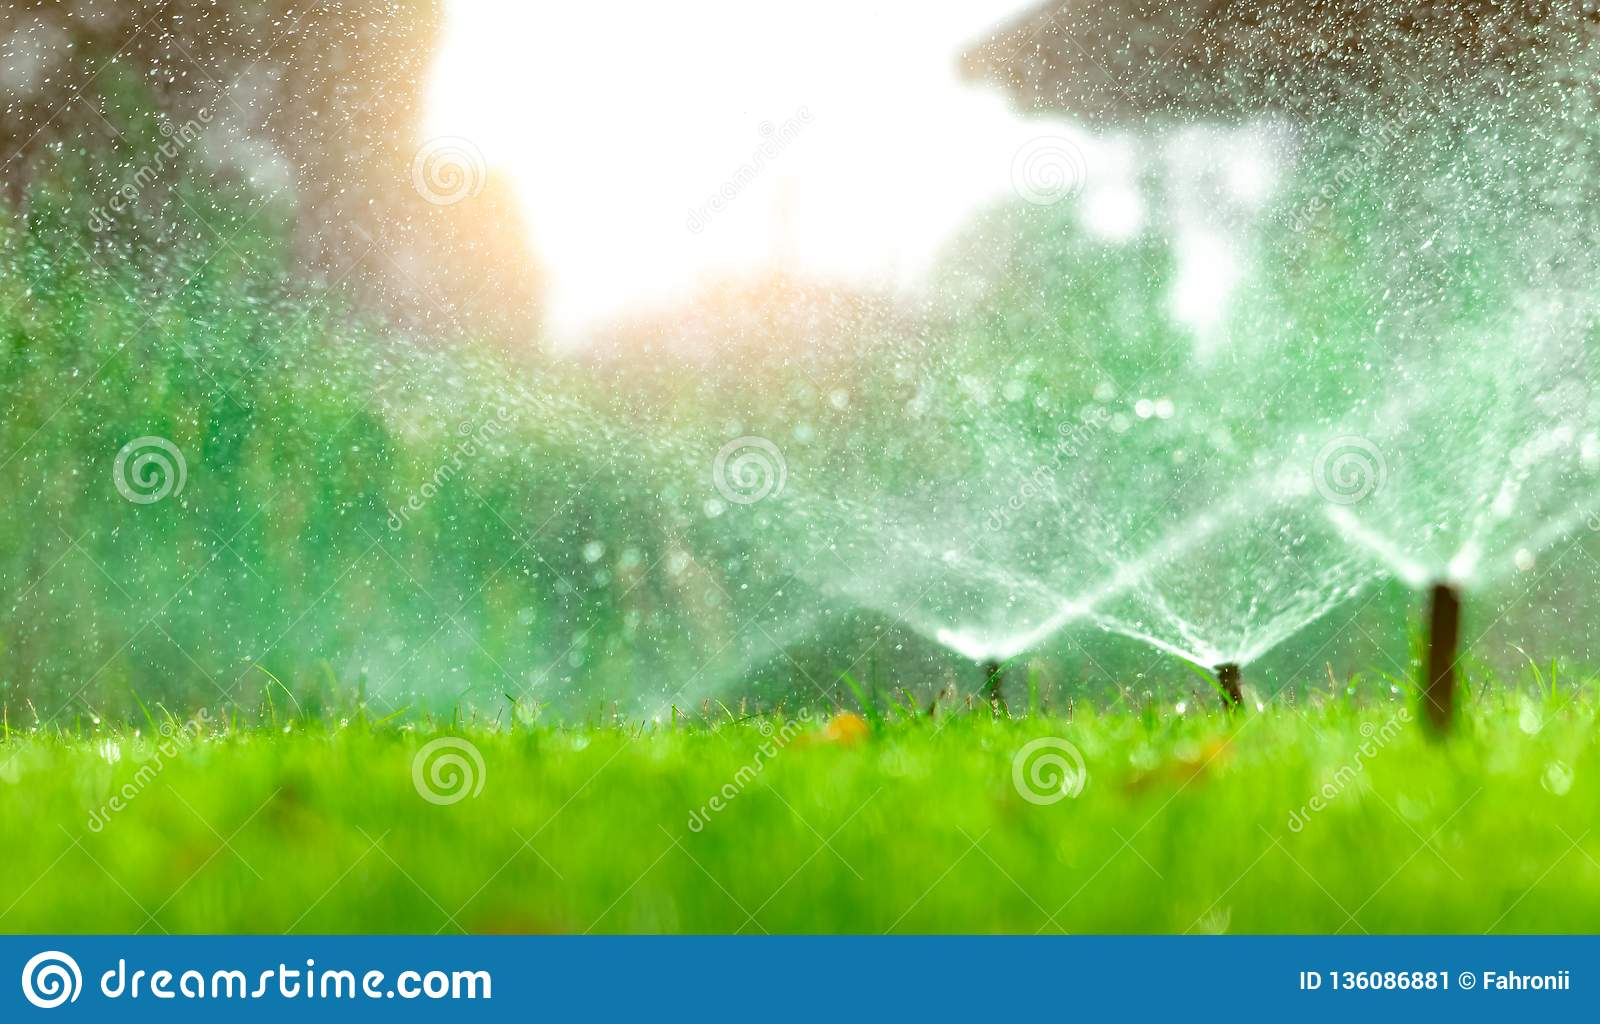 Automatic lawn sprinkler watering green grass. Sprinkler with automatic system. Garden irrigation system watering lawn. Water